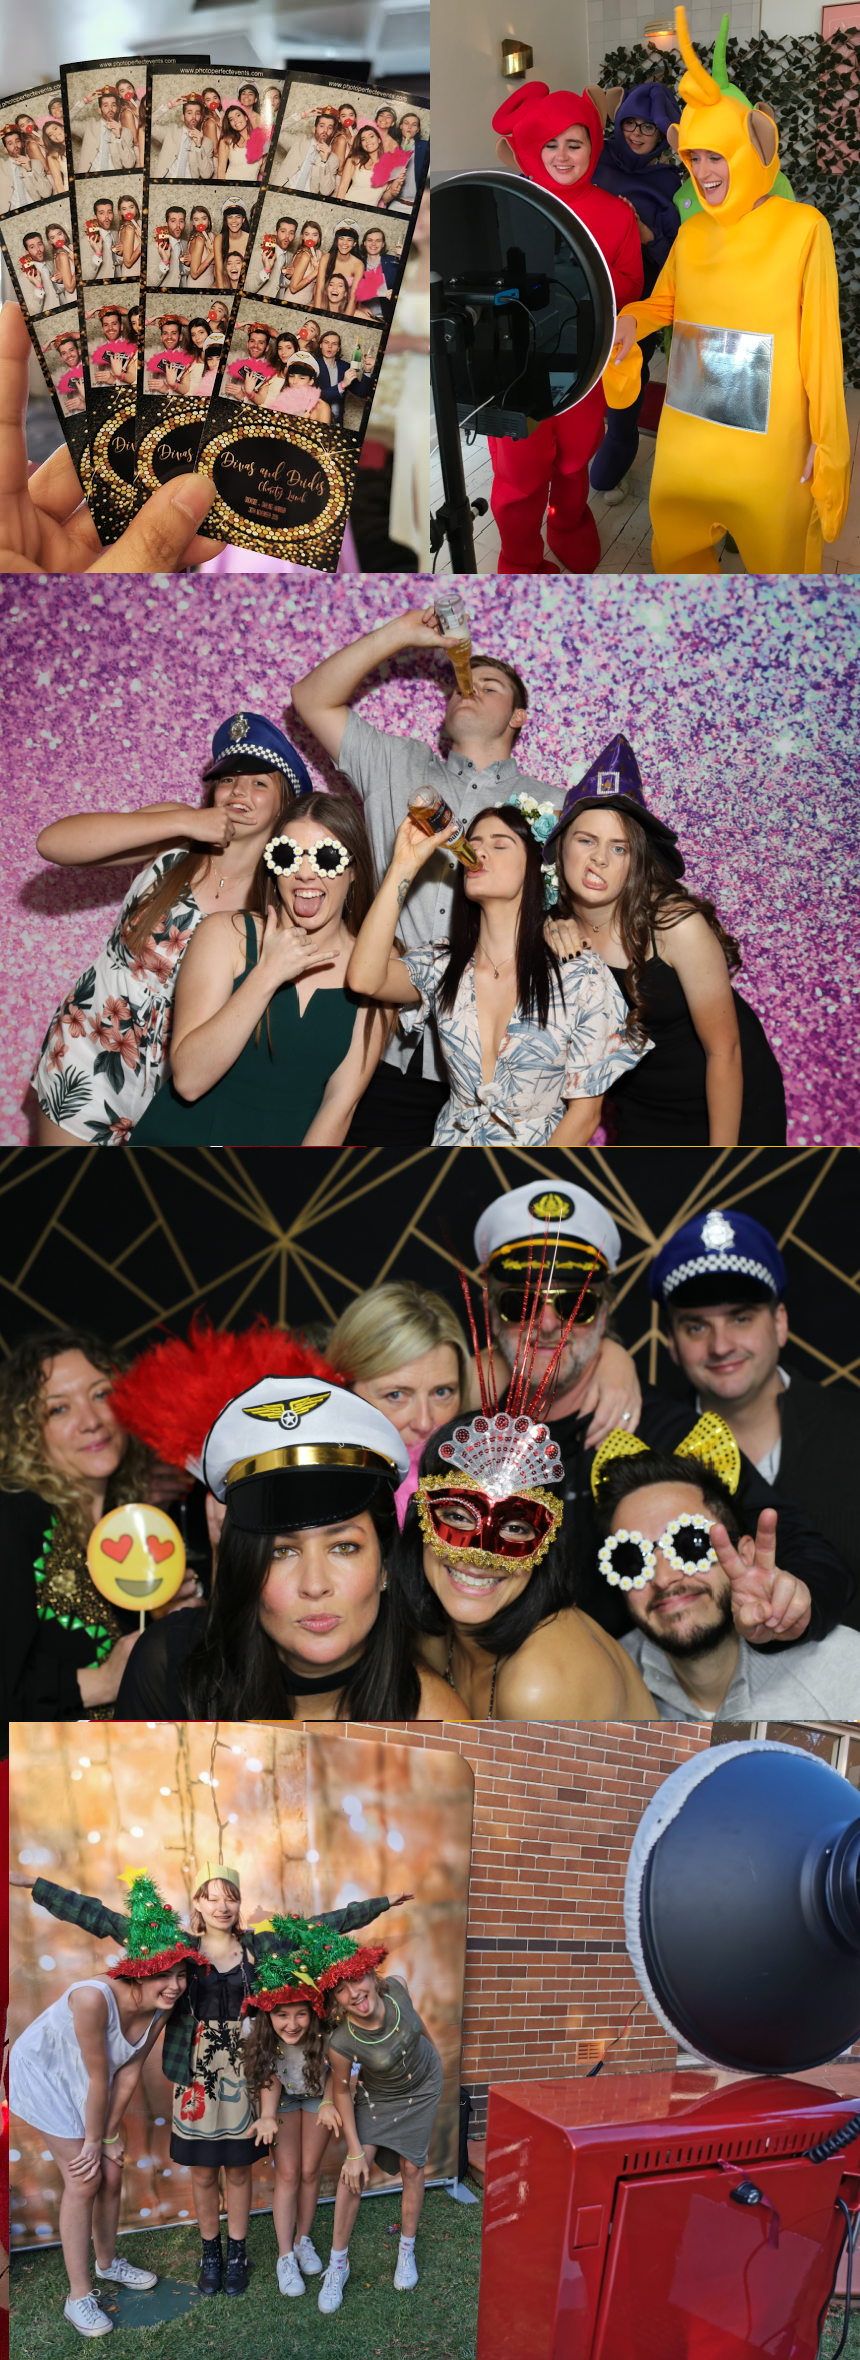 Mirror Photo Booth Rentals in Sydney